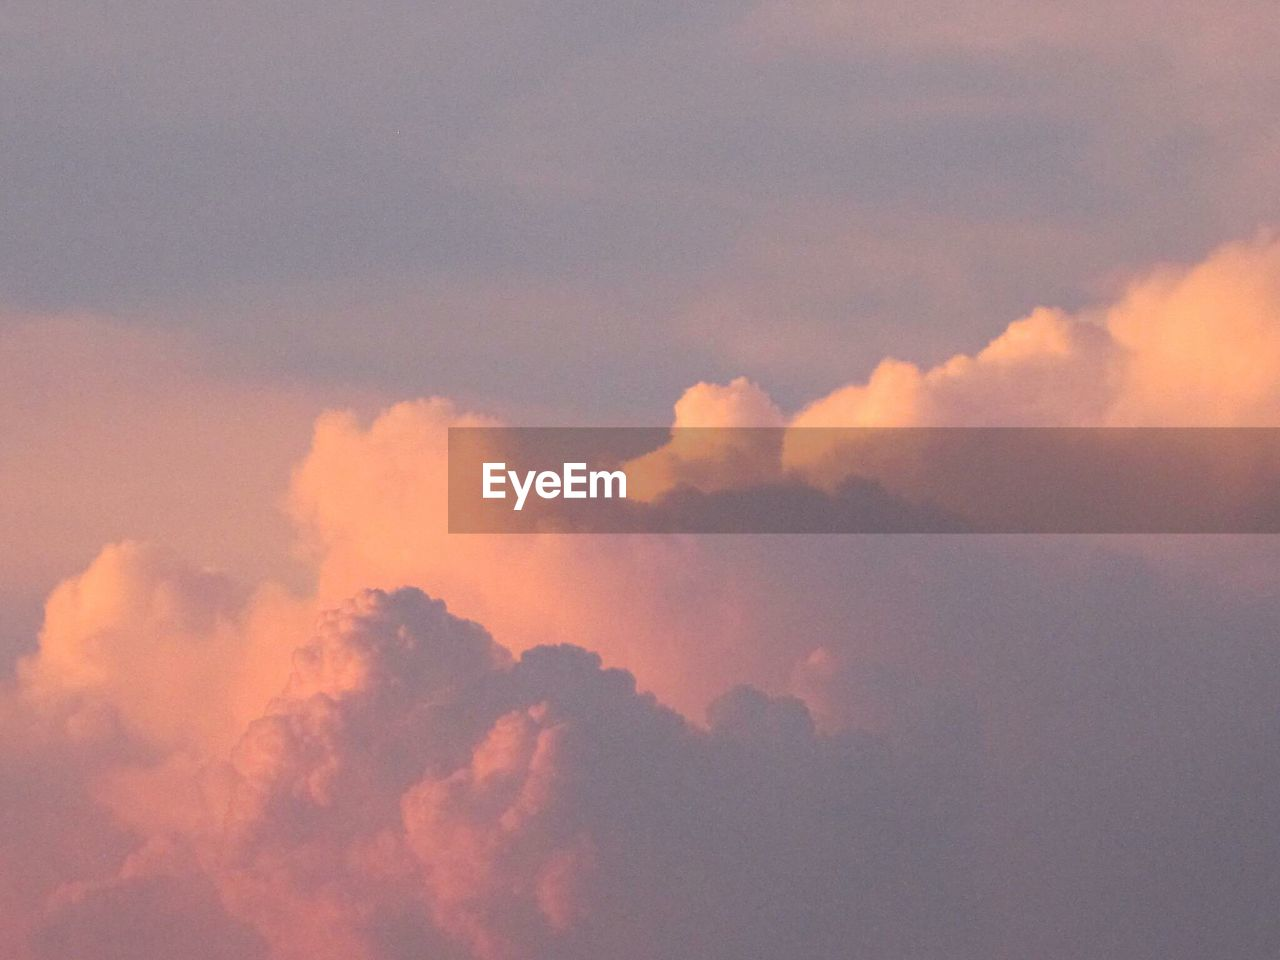 nature, beauty in nature, sky, tranquility, cloud - sky, atmospheric mood, backgrounds, scenics, softness, sky only, cloudscape, no people, heaven, full frame, tranquil scene, vibrant color, outdoors, low angle view, day